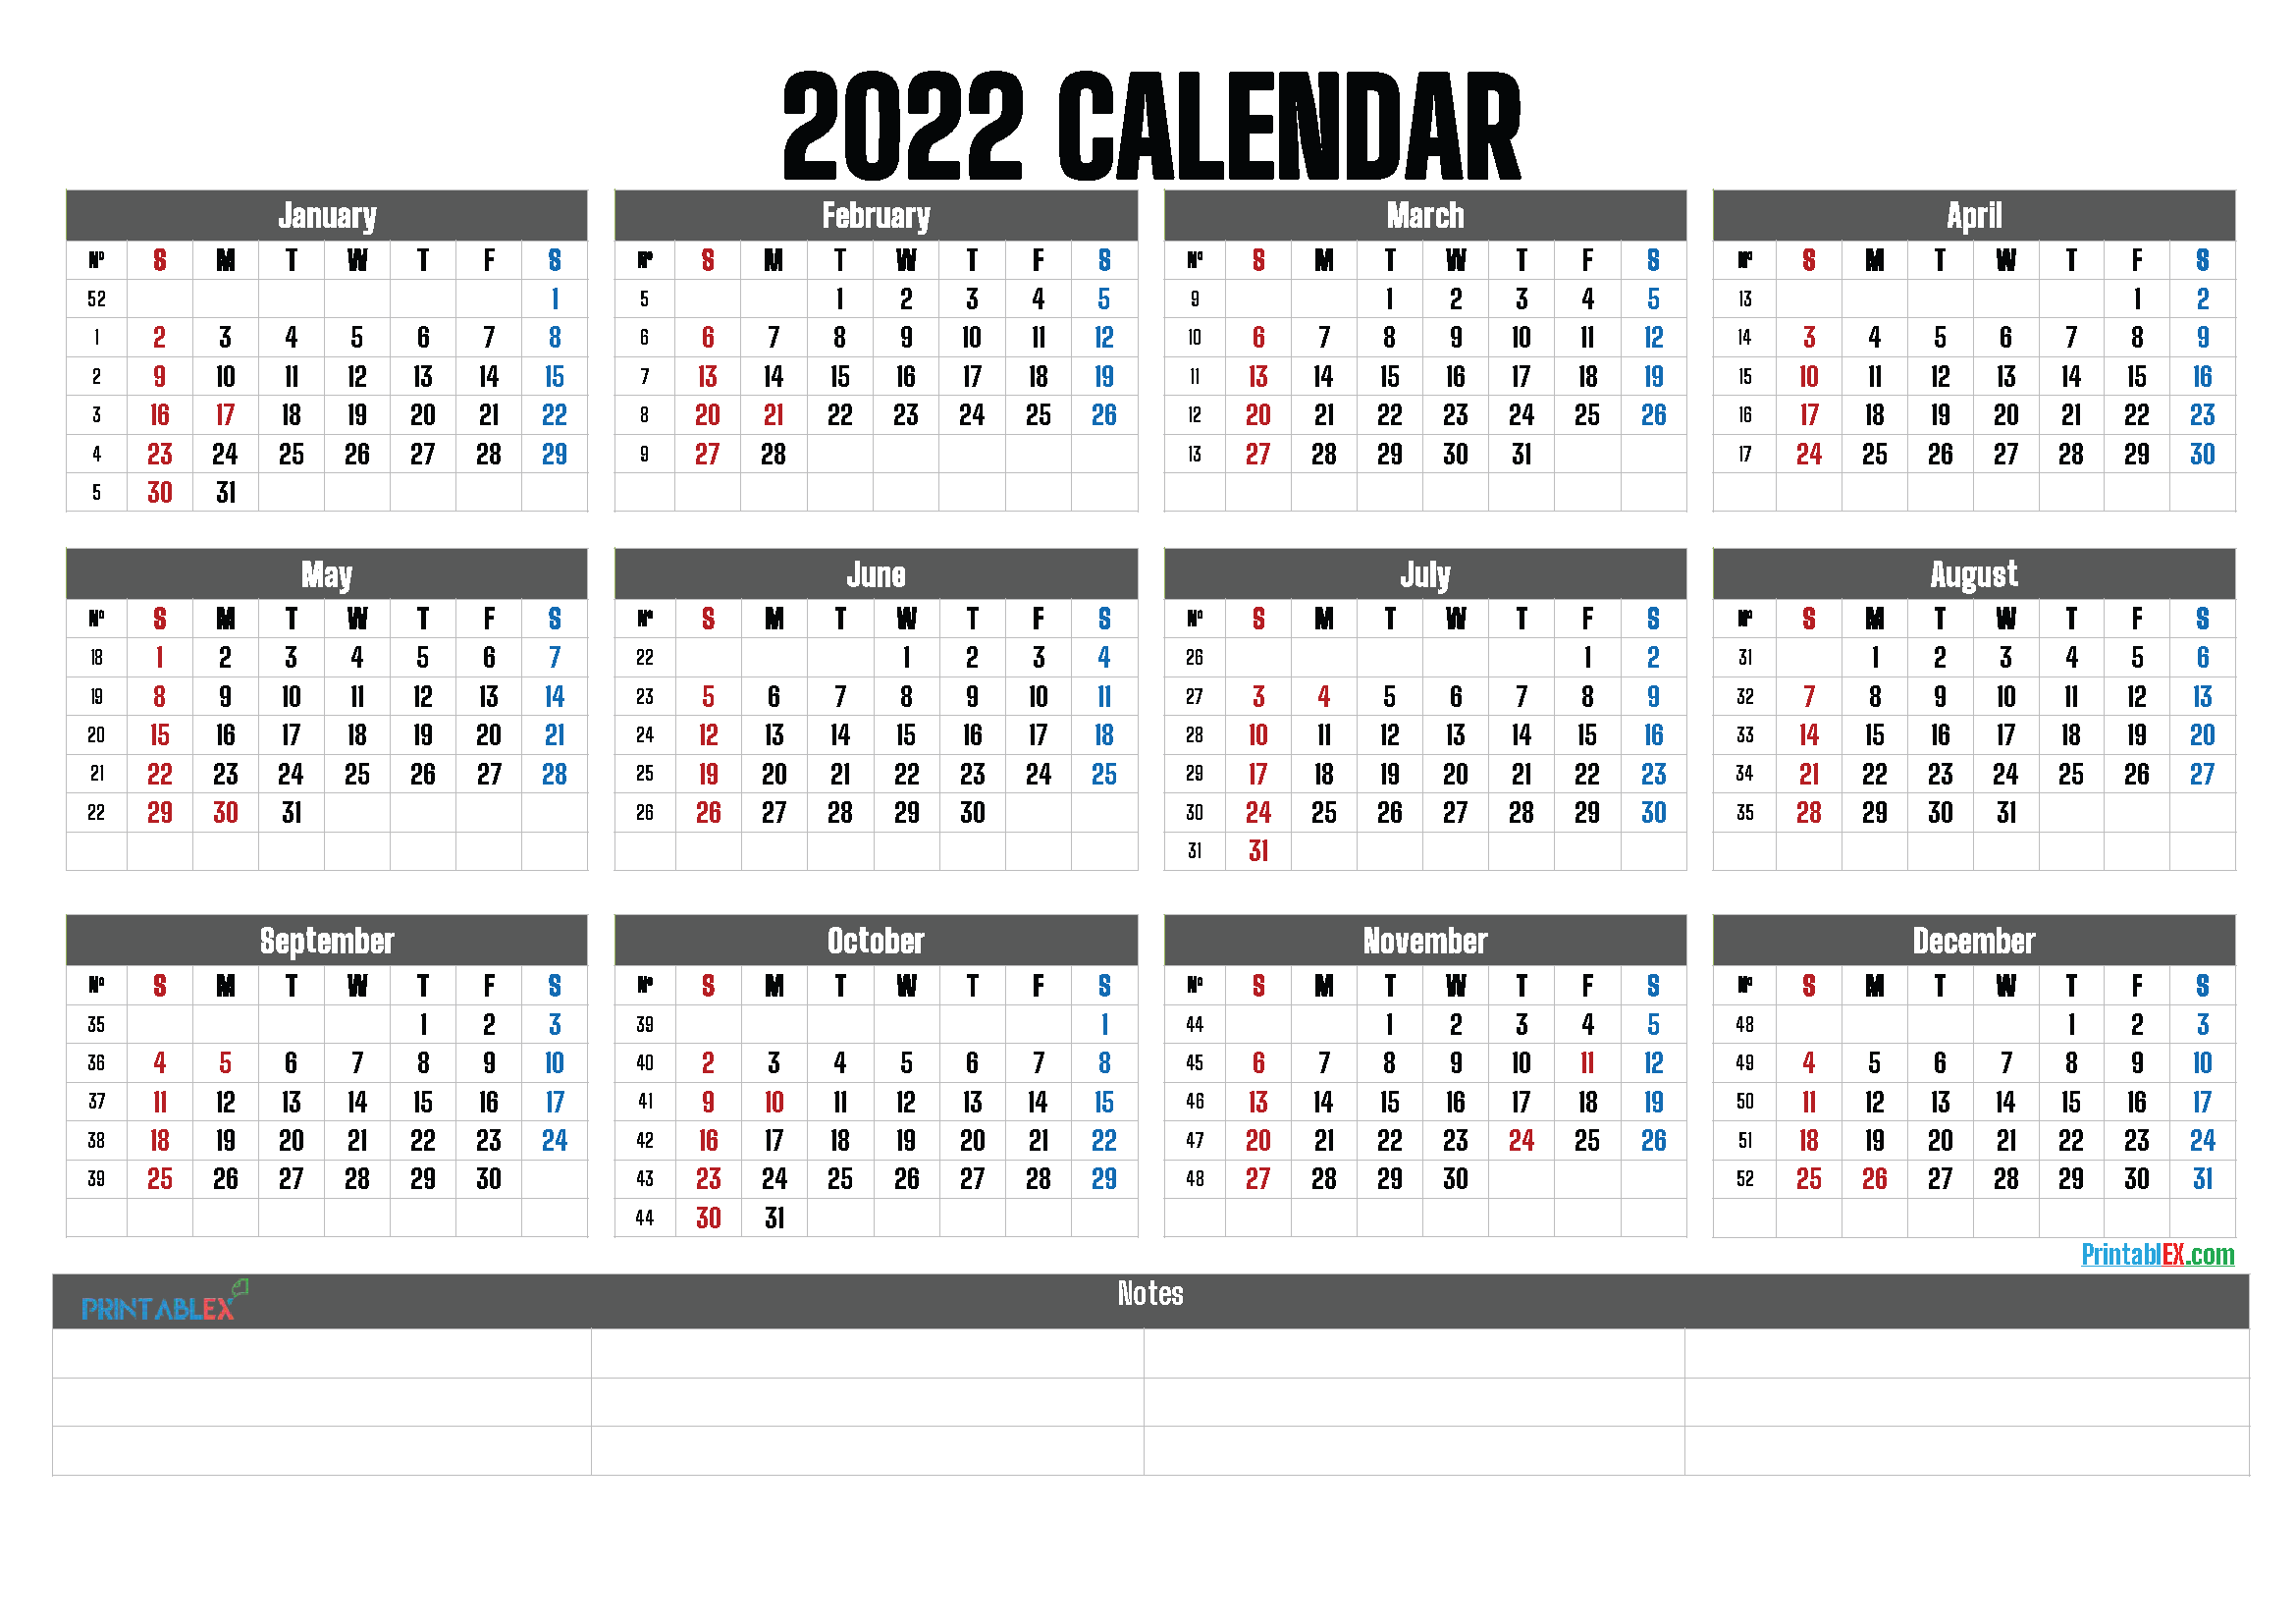 2022 Printable Yearly Calendar with Week Numbers (Font: leand)